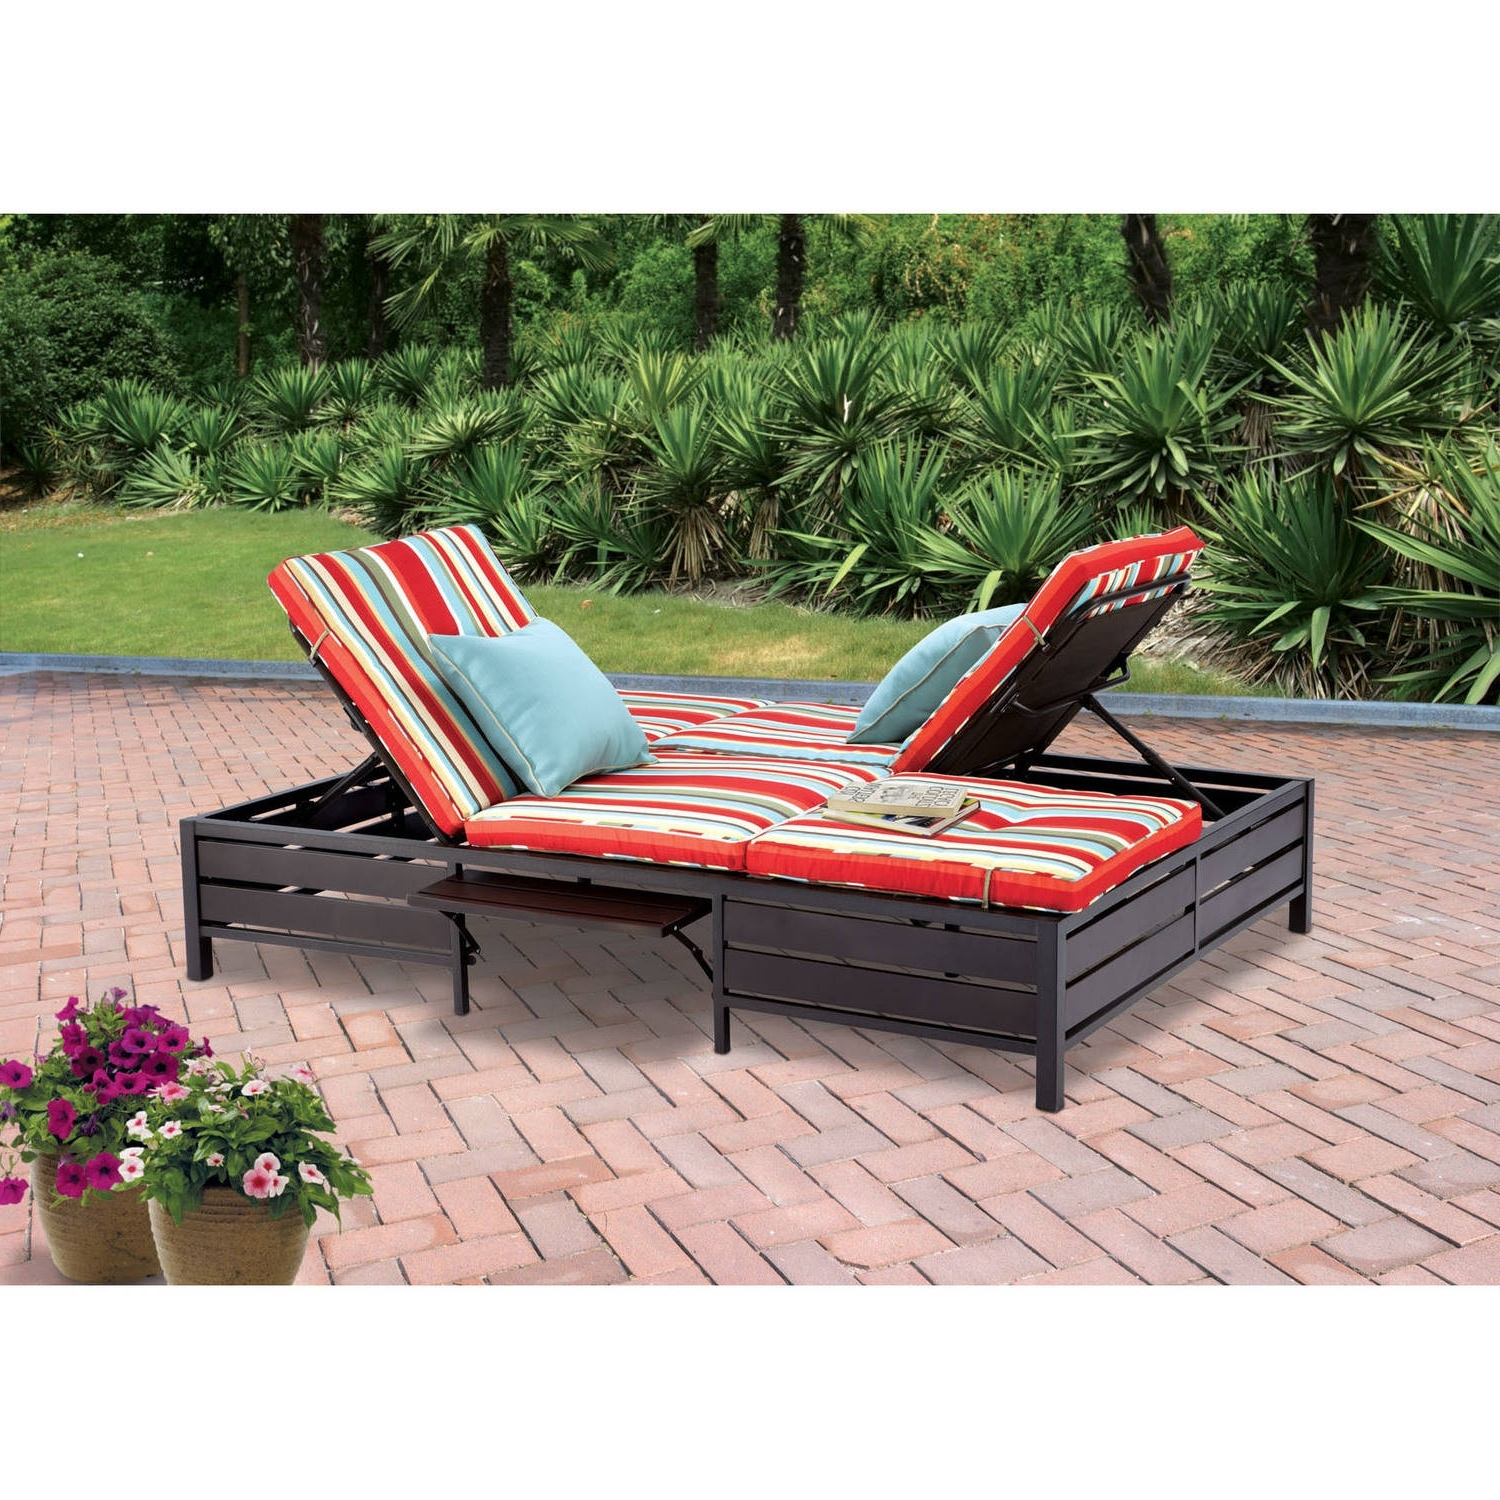 Mainstays Outdoor Double Chaise Lounger, Stripe, Seats 2 – Walmart With Regard To Most Recently Released Walmart Chaises (View 6 of 15)